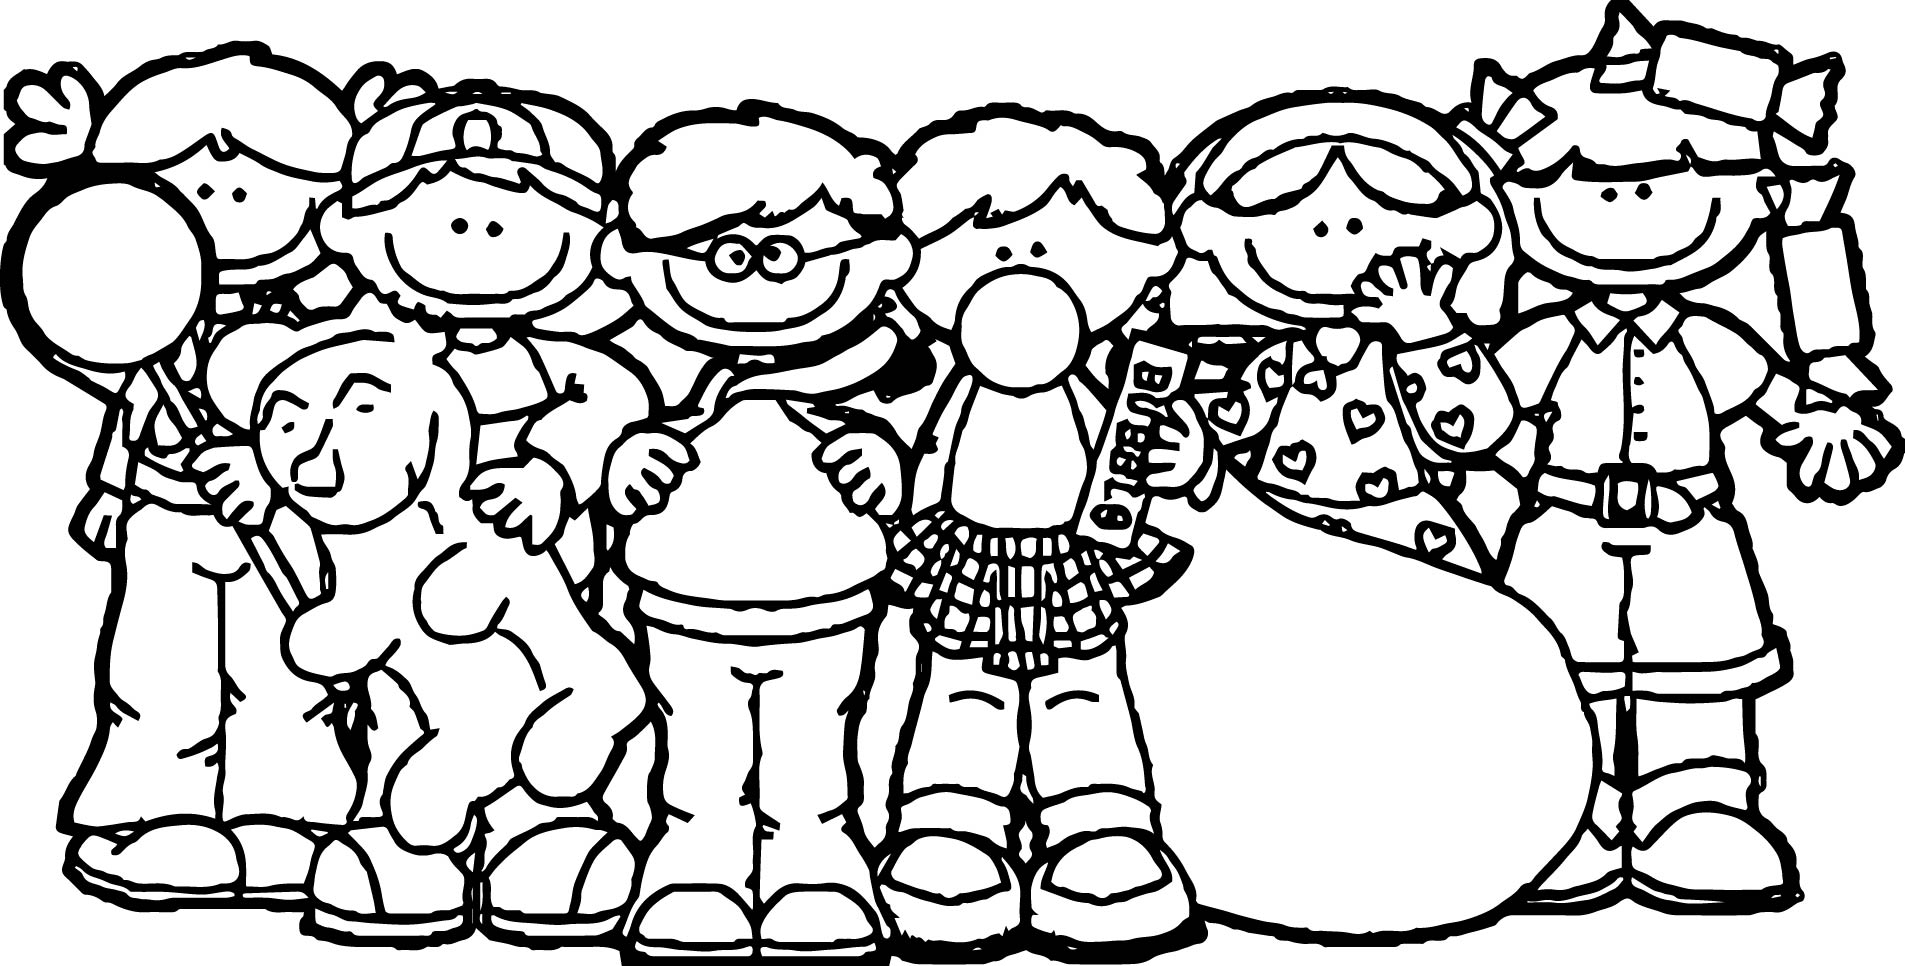 coloring pages for 3rd graders 3rd grade coloring page wecoloring pages for coloring 3rd graders